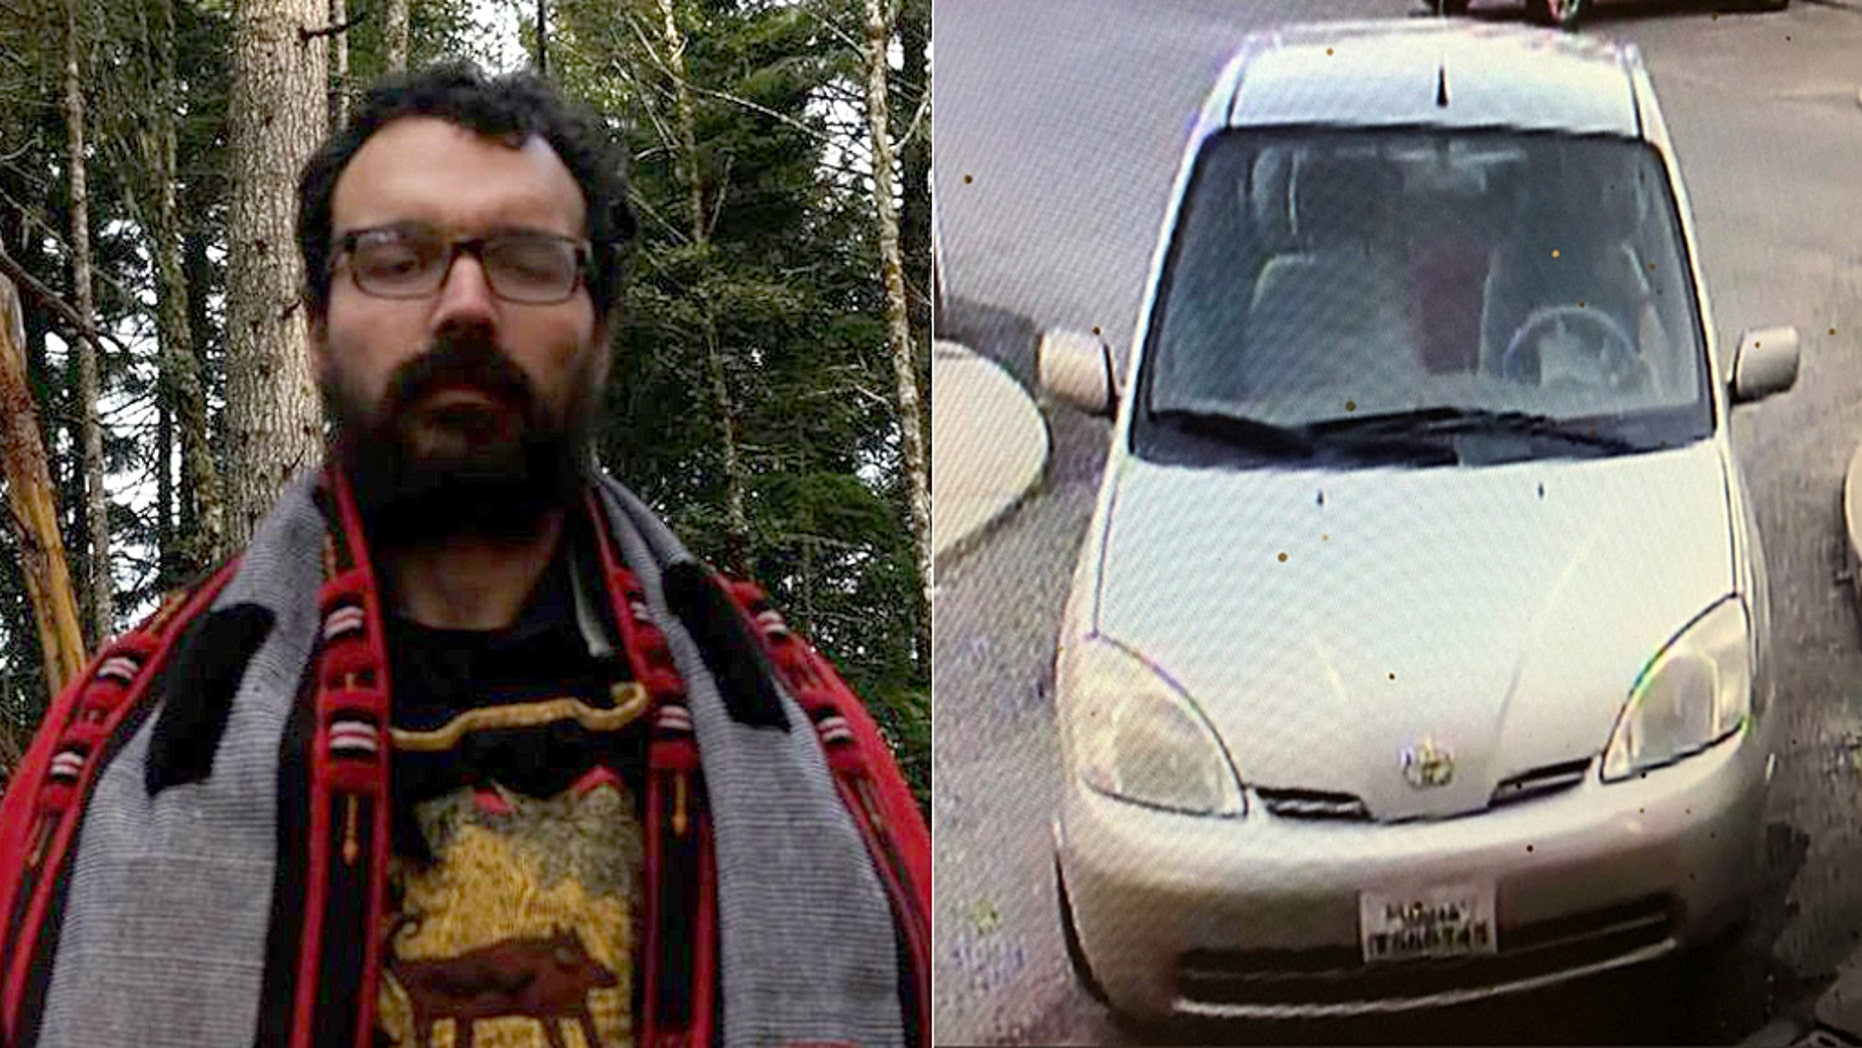 Domenic Micheli left in a older model small silver Toyota Prius or Yaris after hacking his ex-boss to death with a hatchet, according to police.